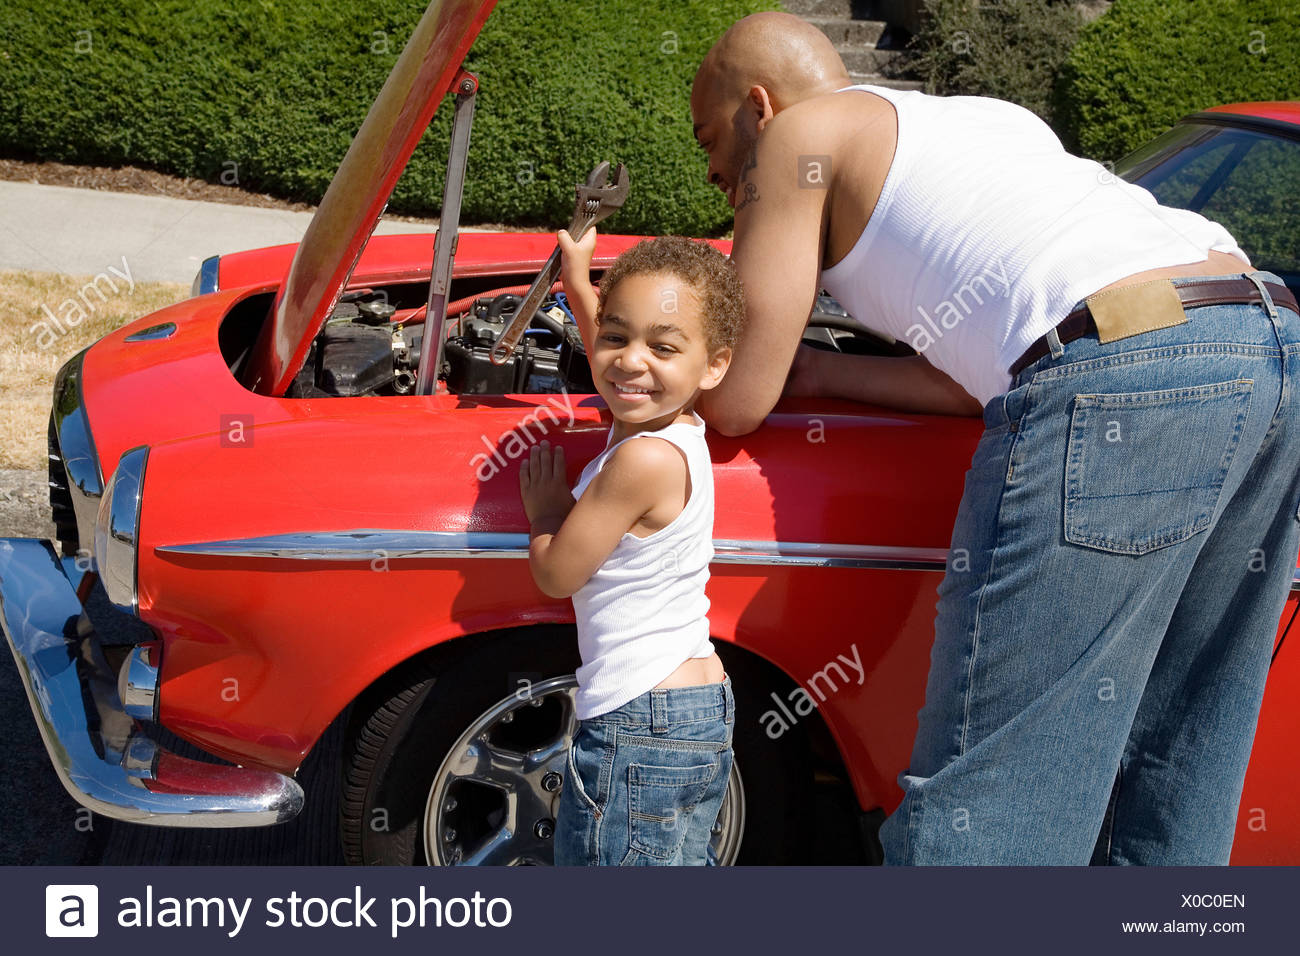 Young boy helping his father work on car - Stock Image